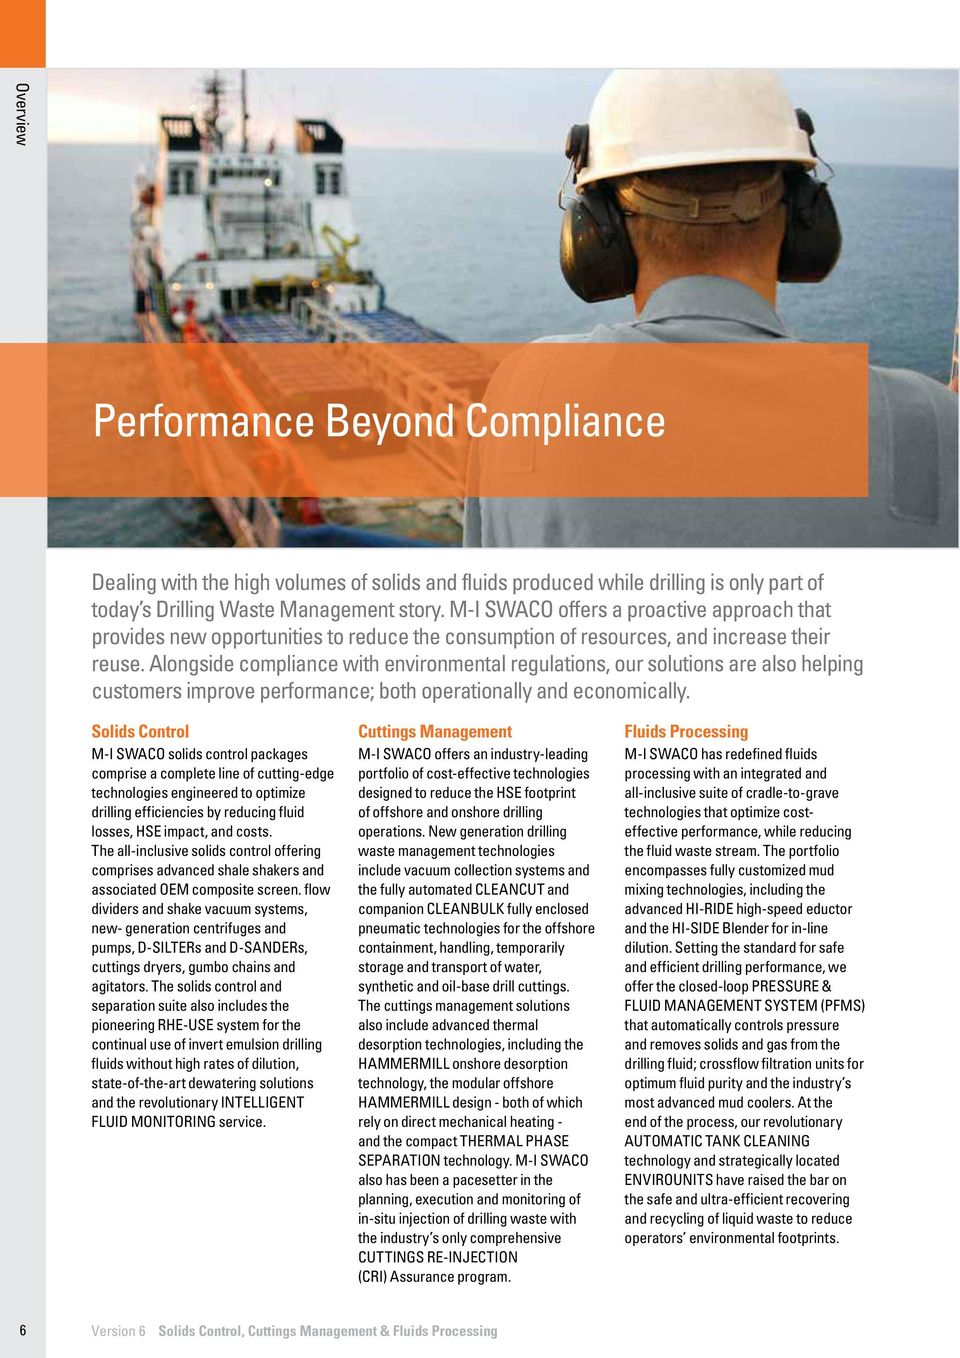 Alongside compliance with environmental regulations, our solutions are also helping customers improve performance; both operationally and economically.